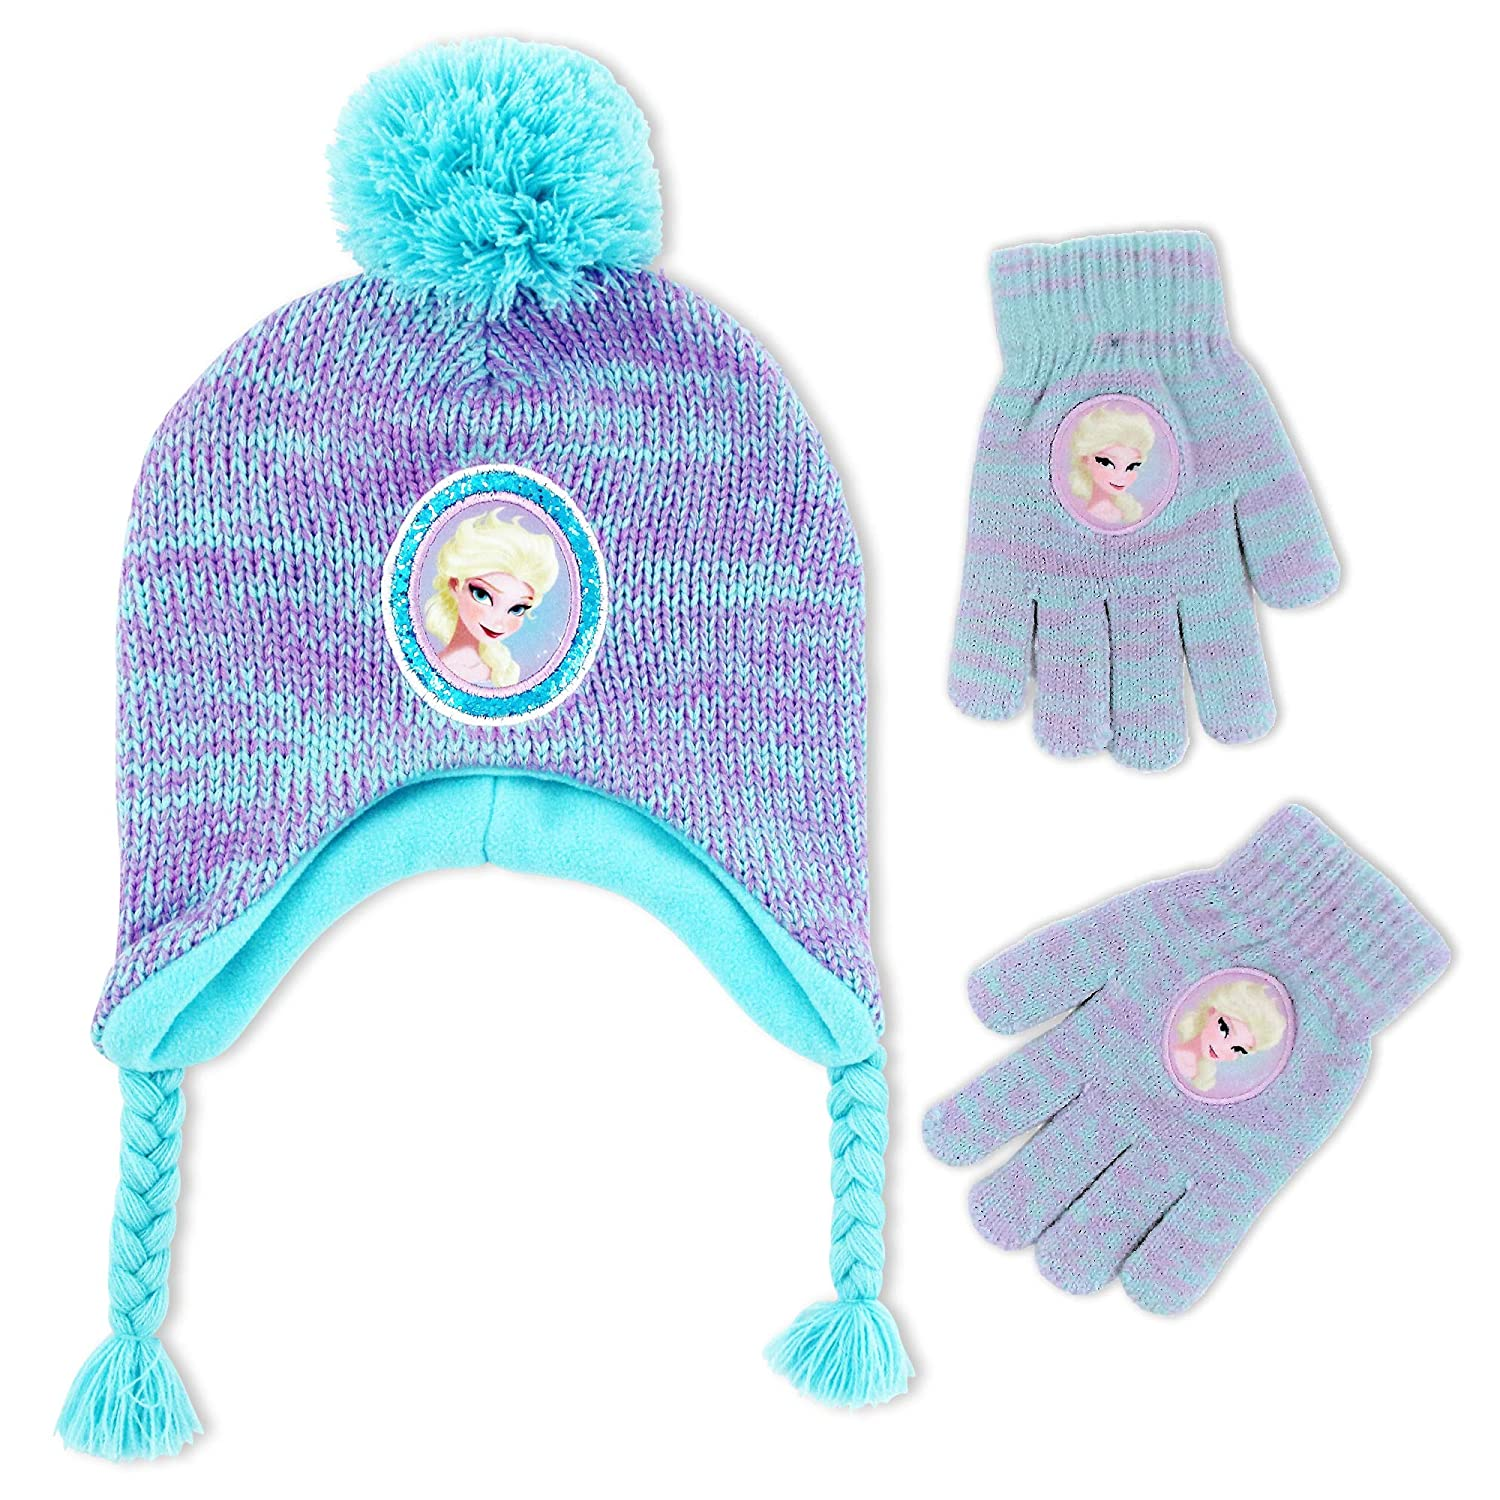 Other Newborn-5t Girls Clothes Spirited Baby Hat And Mittens Clothing, Shoes & Accessories